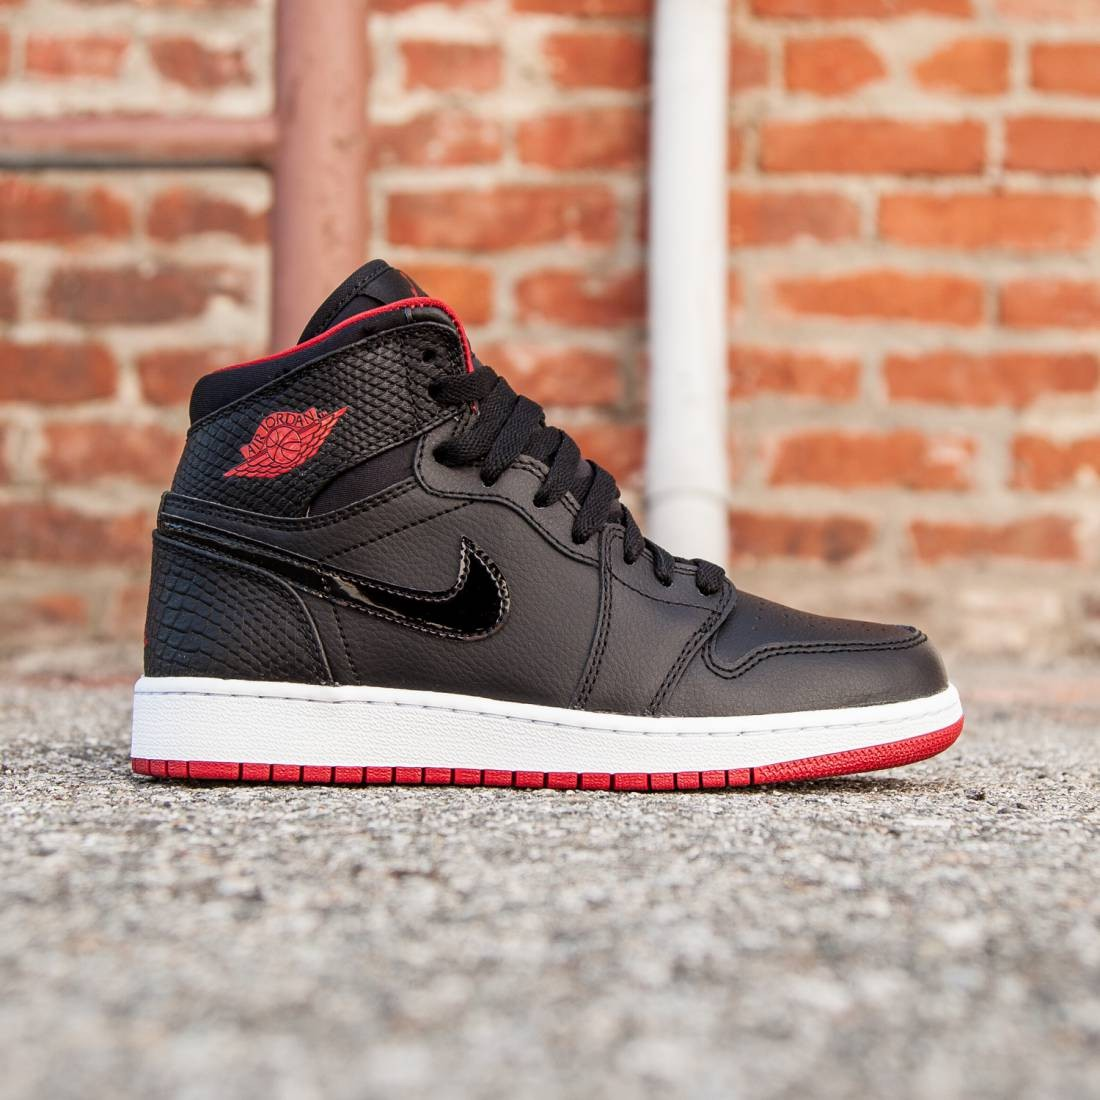 official photos 6a813 bfb1f Air Jordan 1 Retro High (GS) Big Kids (black / white / gym red)